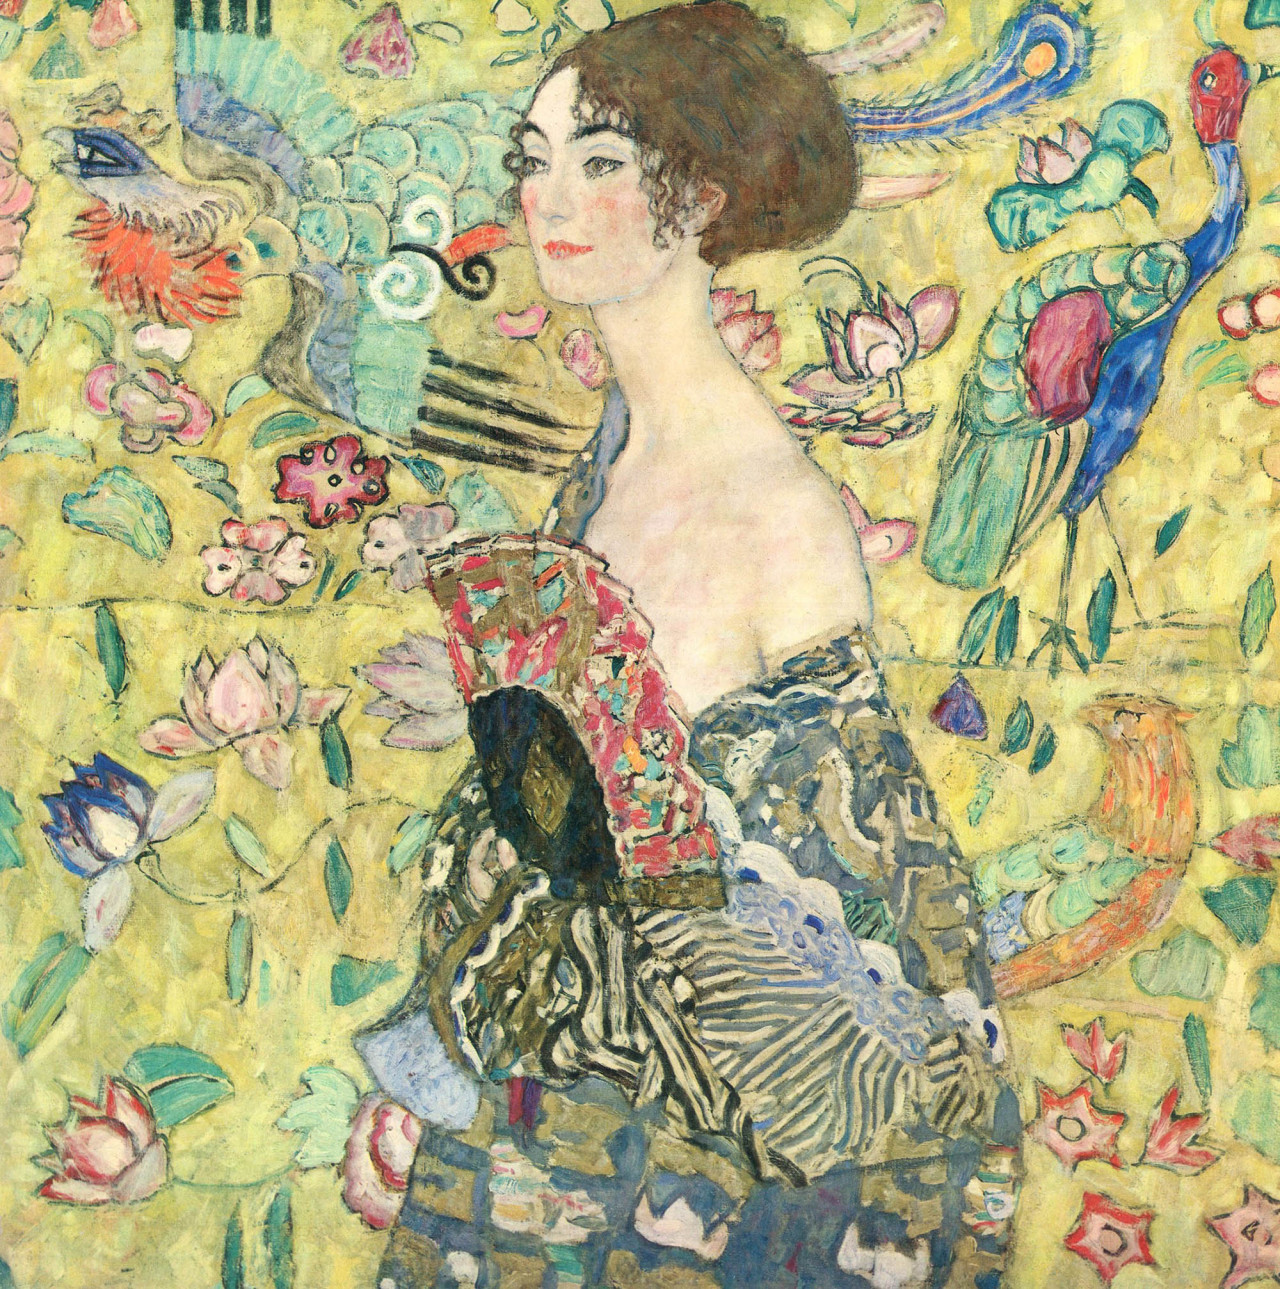 Gustav Klimt, Lady with Fan, 1918 oil on canvas, 39 3/8 × 39 3/8 inches Download Image Visit Source @ wikipaintings.org